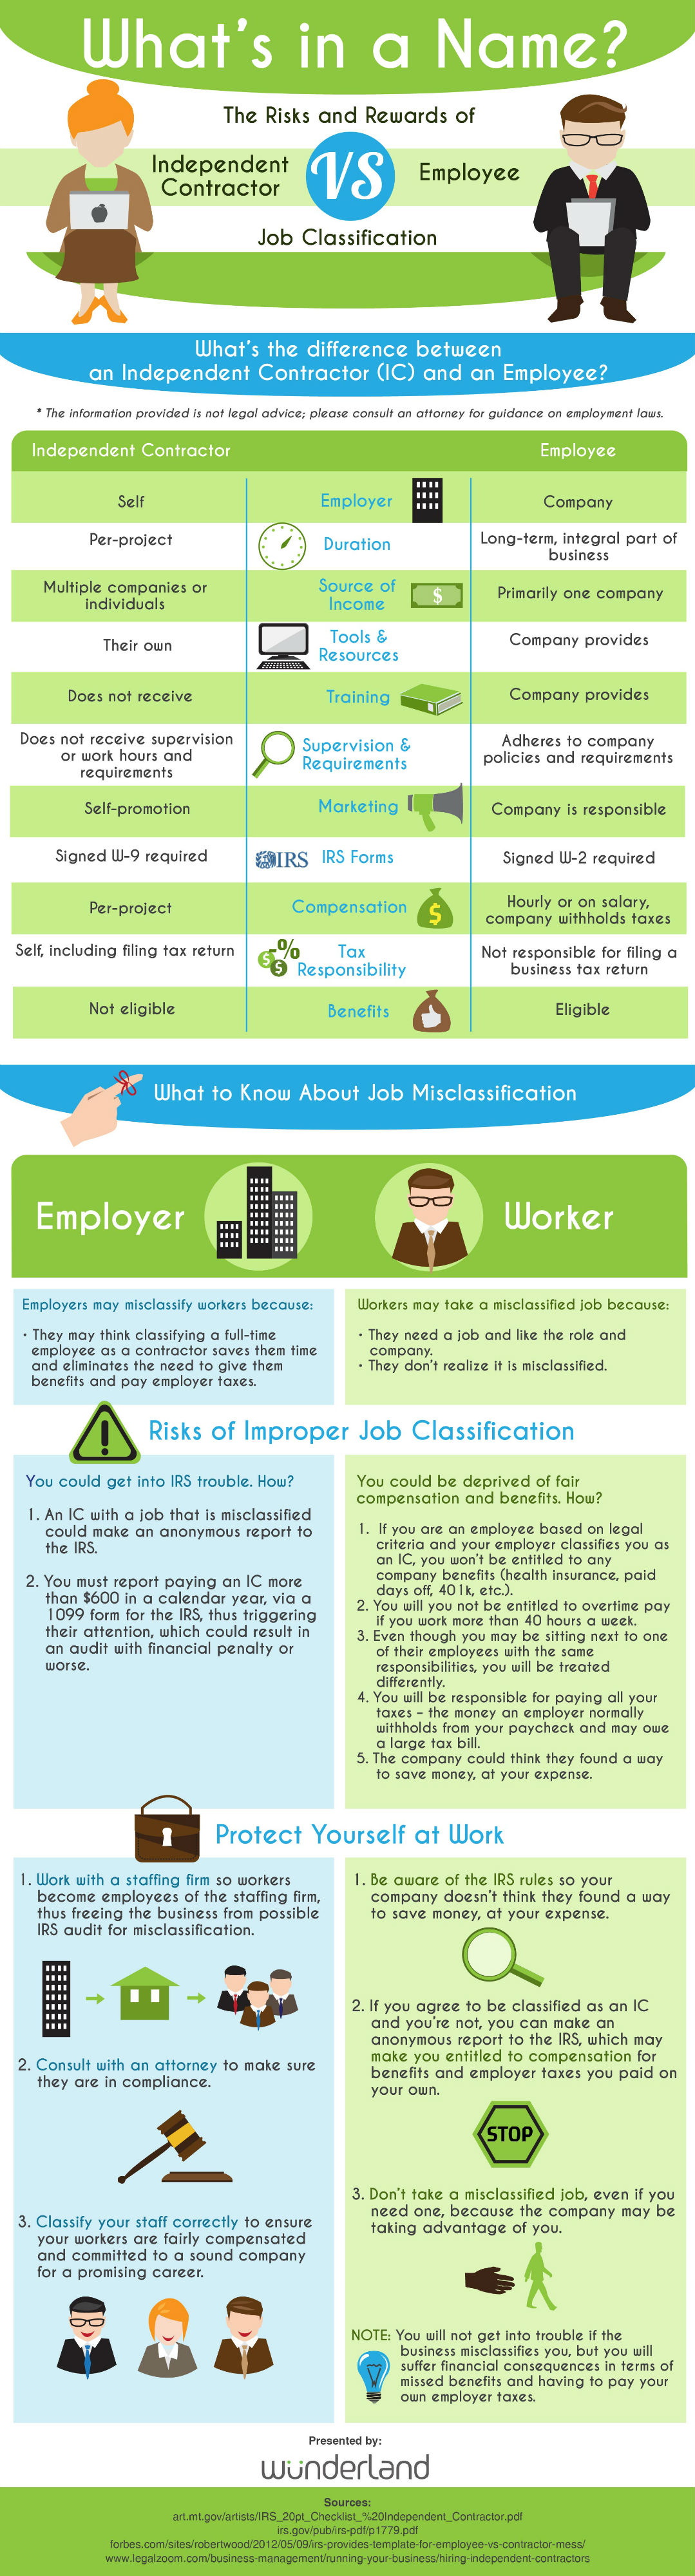 Why Employee vs. Independent Contractor Classification Matters [Infographic]